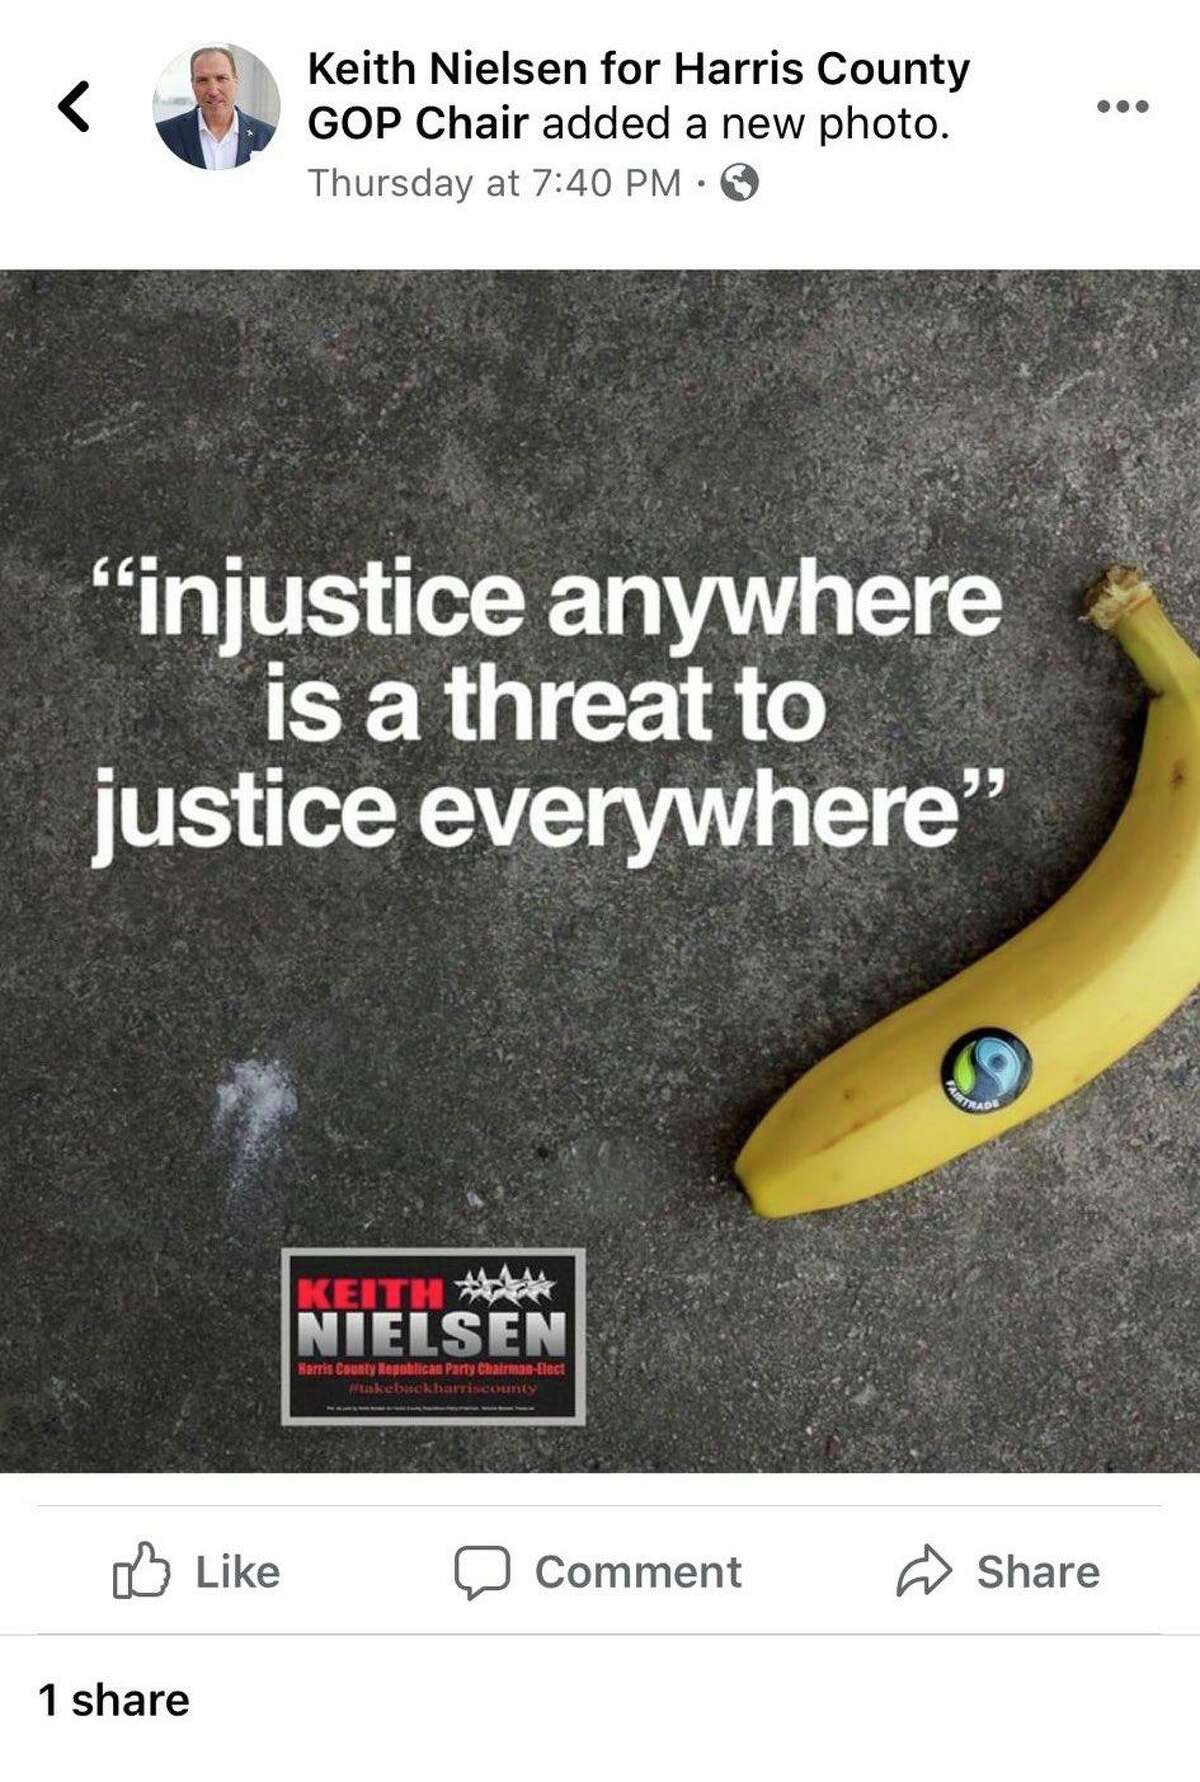 Keith Nielsen, the incoming chairman of the Harris County Republican Party, came under fire from members of his own party after posting a photo on social media of a Martin Luther King, Jr. quote next to a banana early last month.